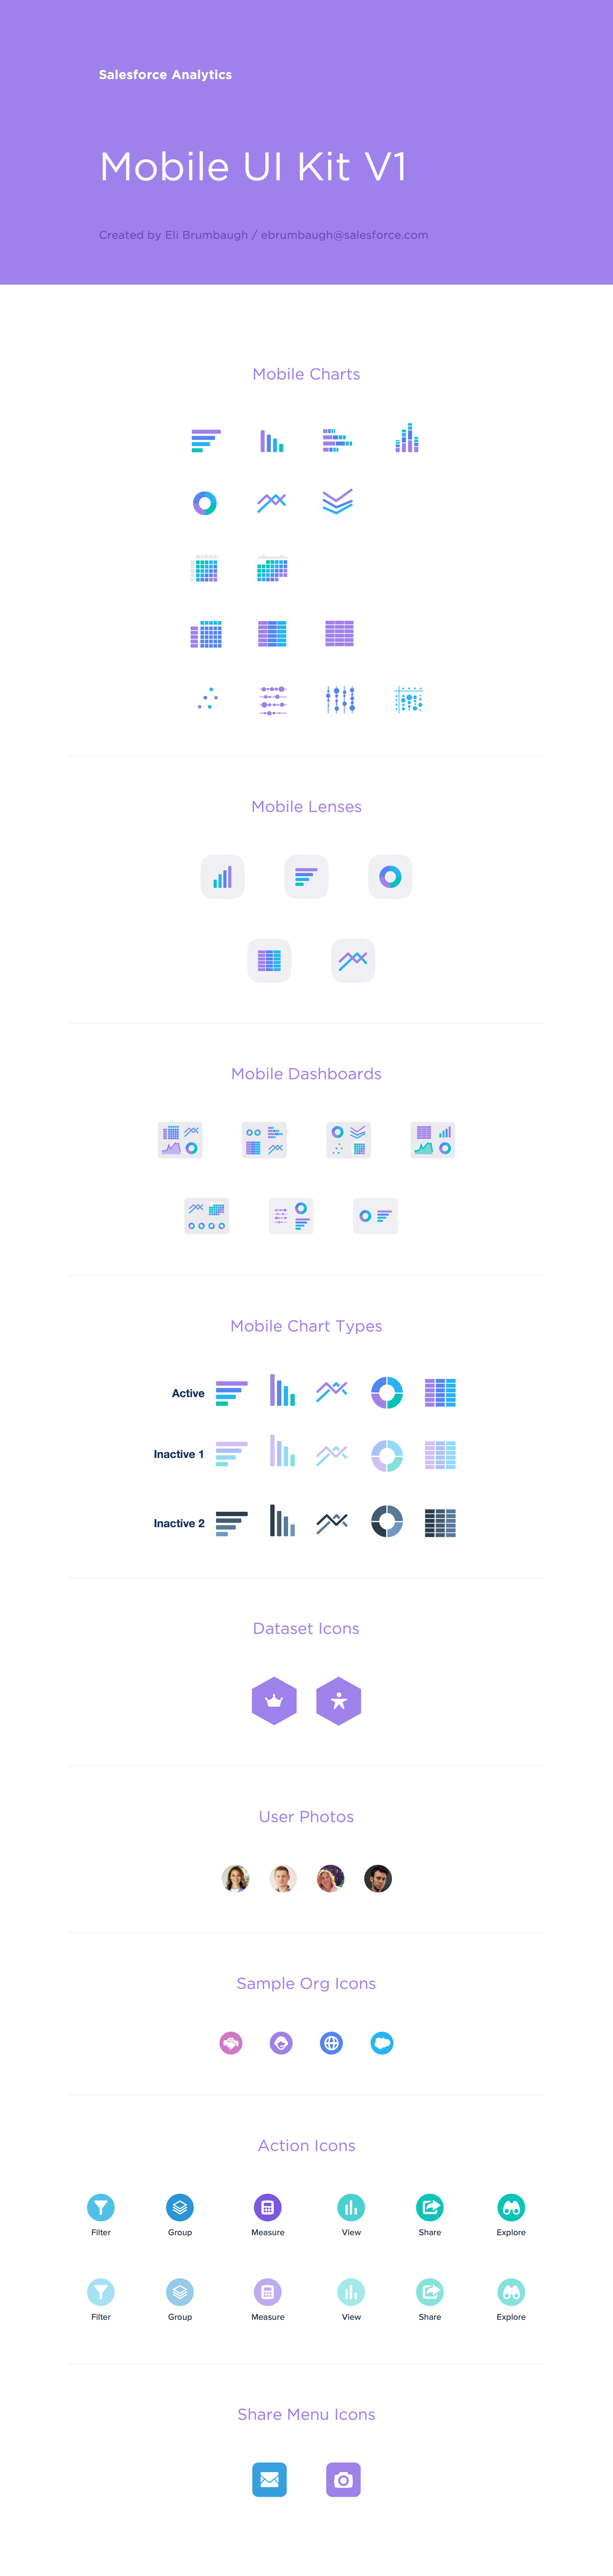 Mobile Iconography@2x.png